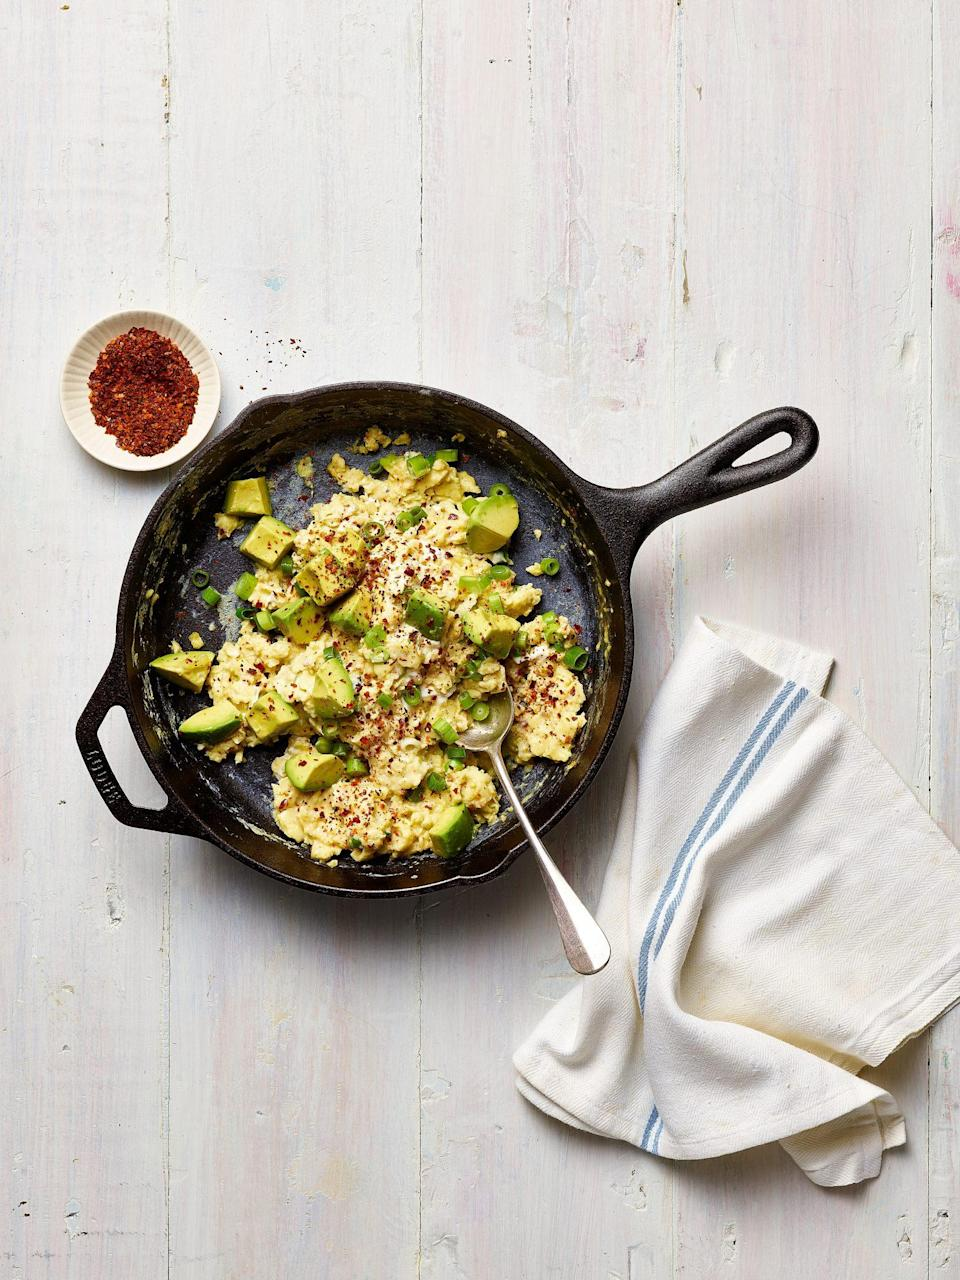 """<p>In the <em>Sunset</em> Test Kitchen, we love to sprinkle sun-dried, coarsely ground Eastern Mediterranean chile peppers--like Aleppo, Marash, and Urfa--on roasted chicken and potatoes, <a href=""""https://www.myrecipes.com/ingredients/best-avocado-recipes"""" rel=""""nofollow noopener"""" target=""""_blank"""" data-ylk=""""slk:avocado toast"""" class=""""link rapid-noclick-resp"""">avocado toast</a>, green salads, pizza, and especially scrambled eggs.</p>"""